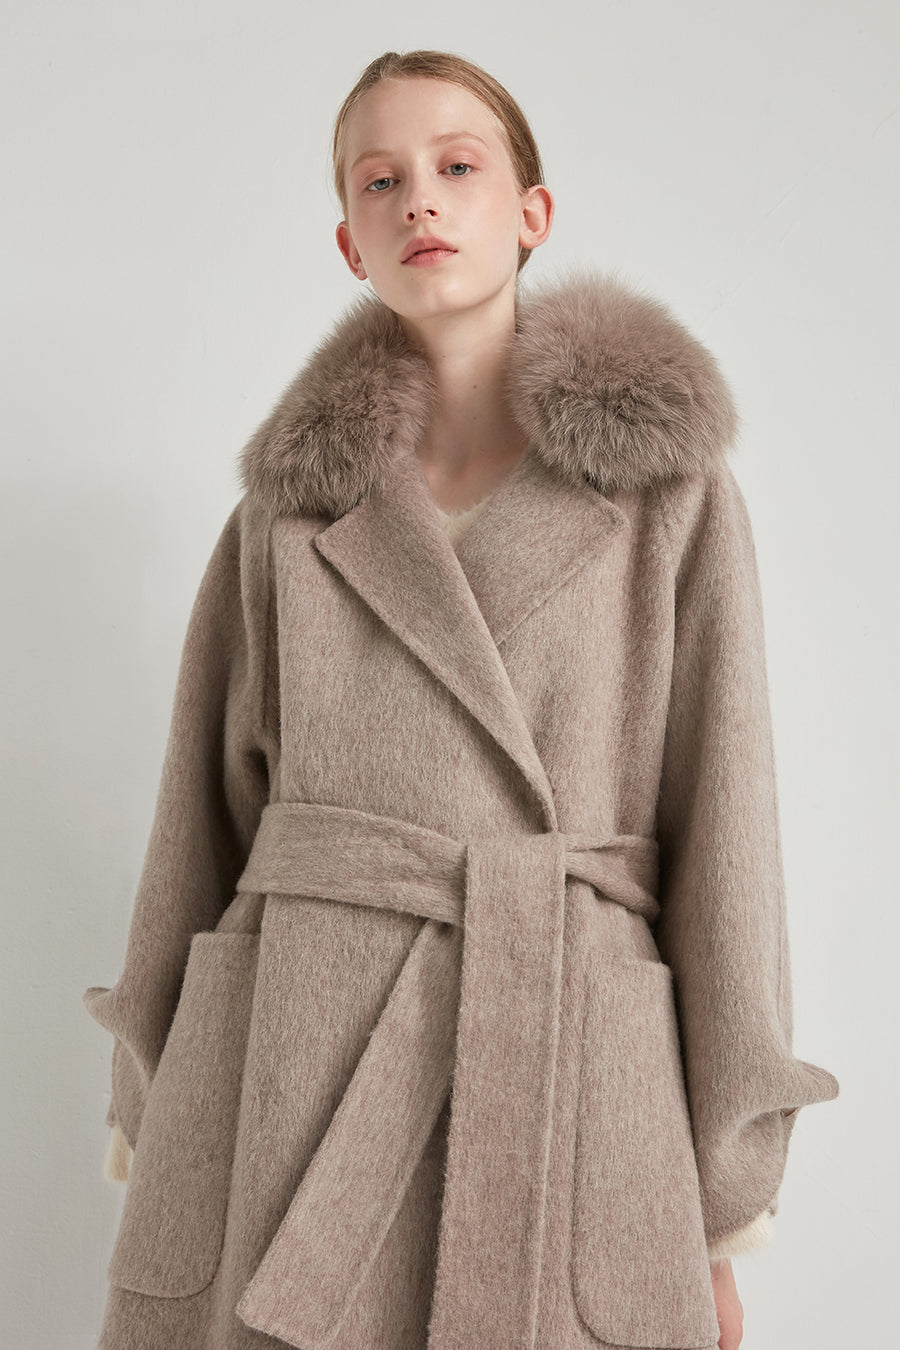 Handmade wool and alpaca-blend coat